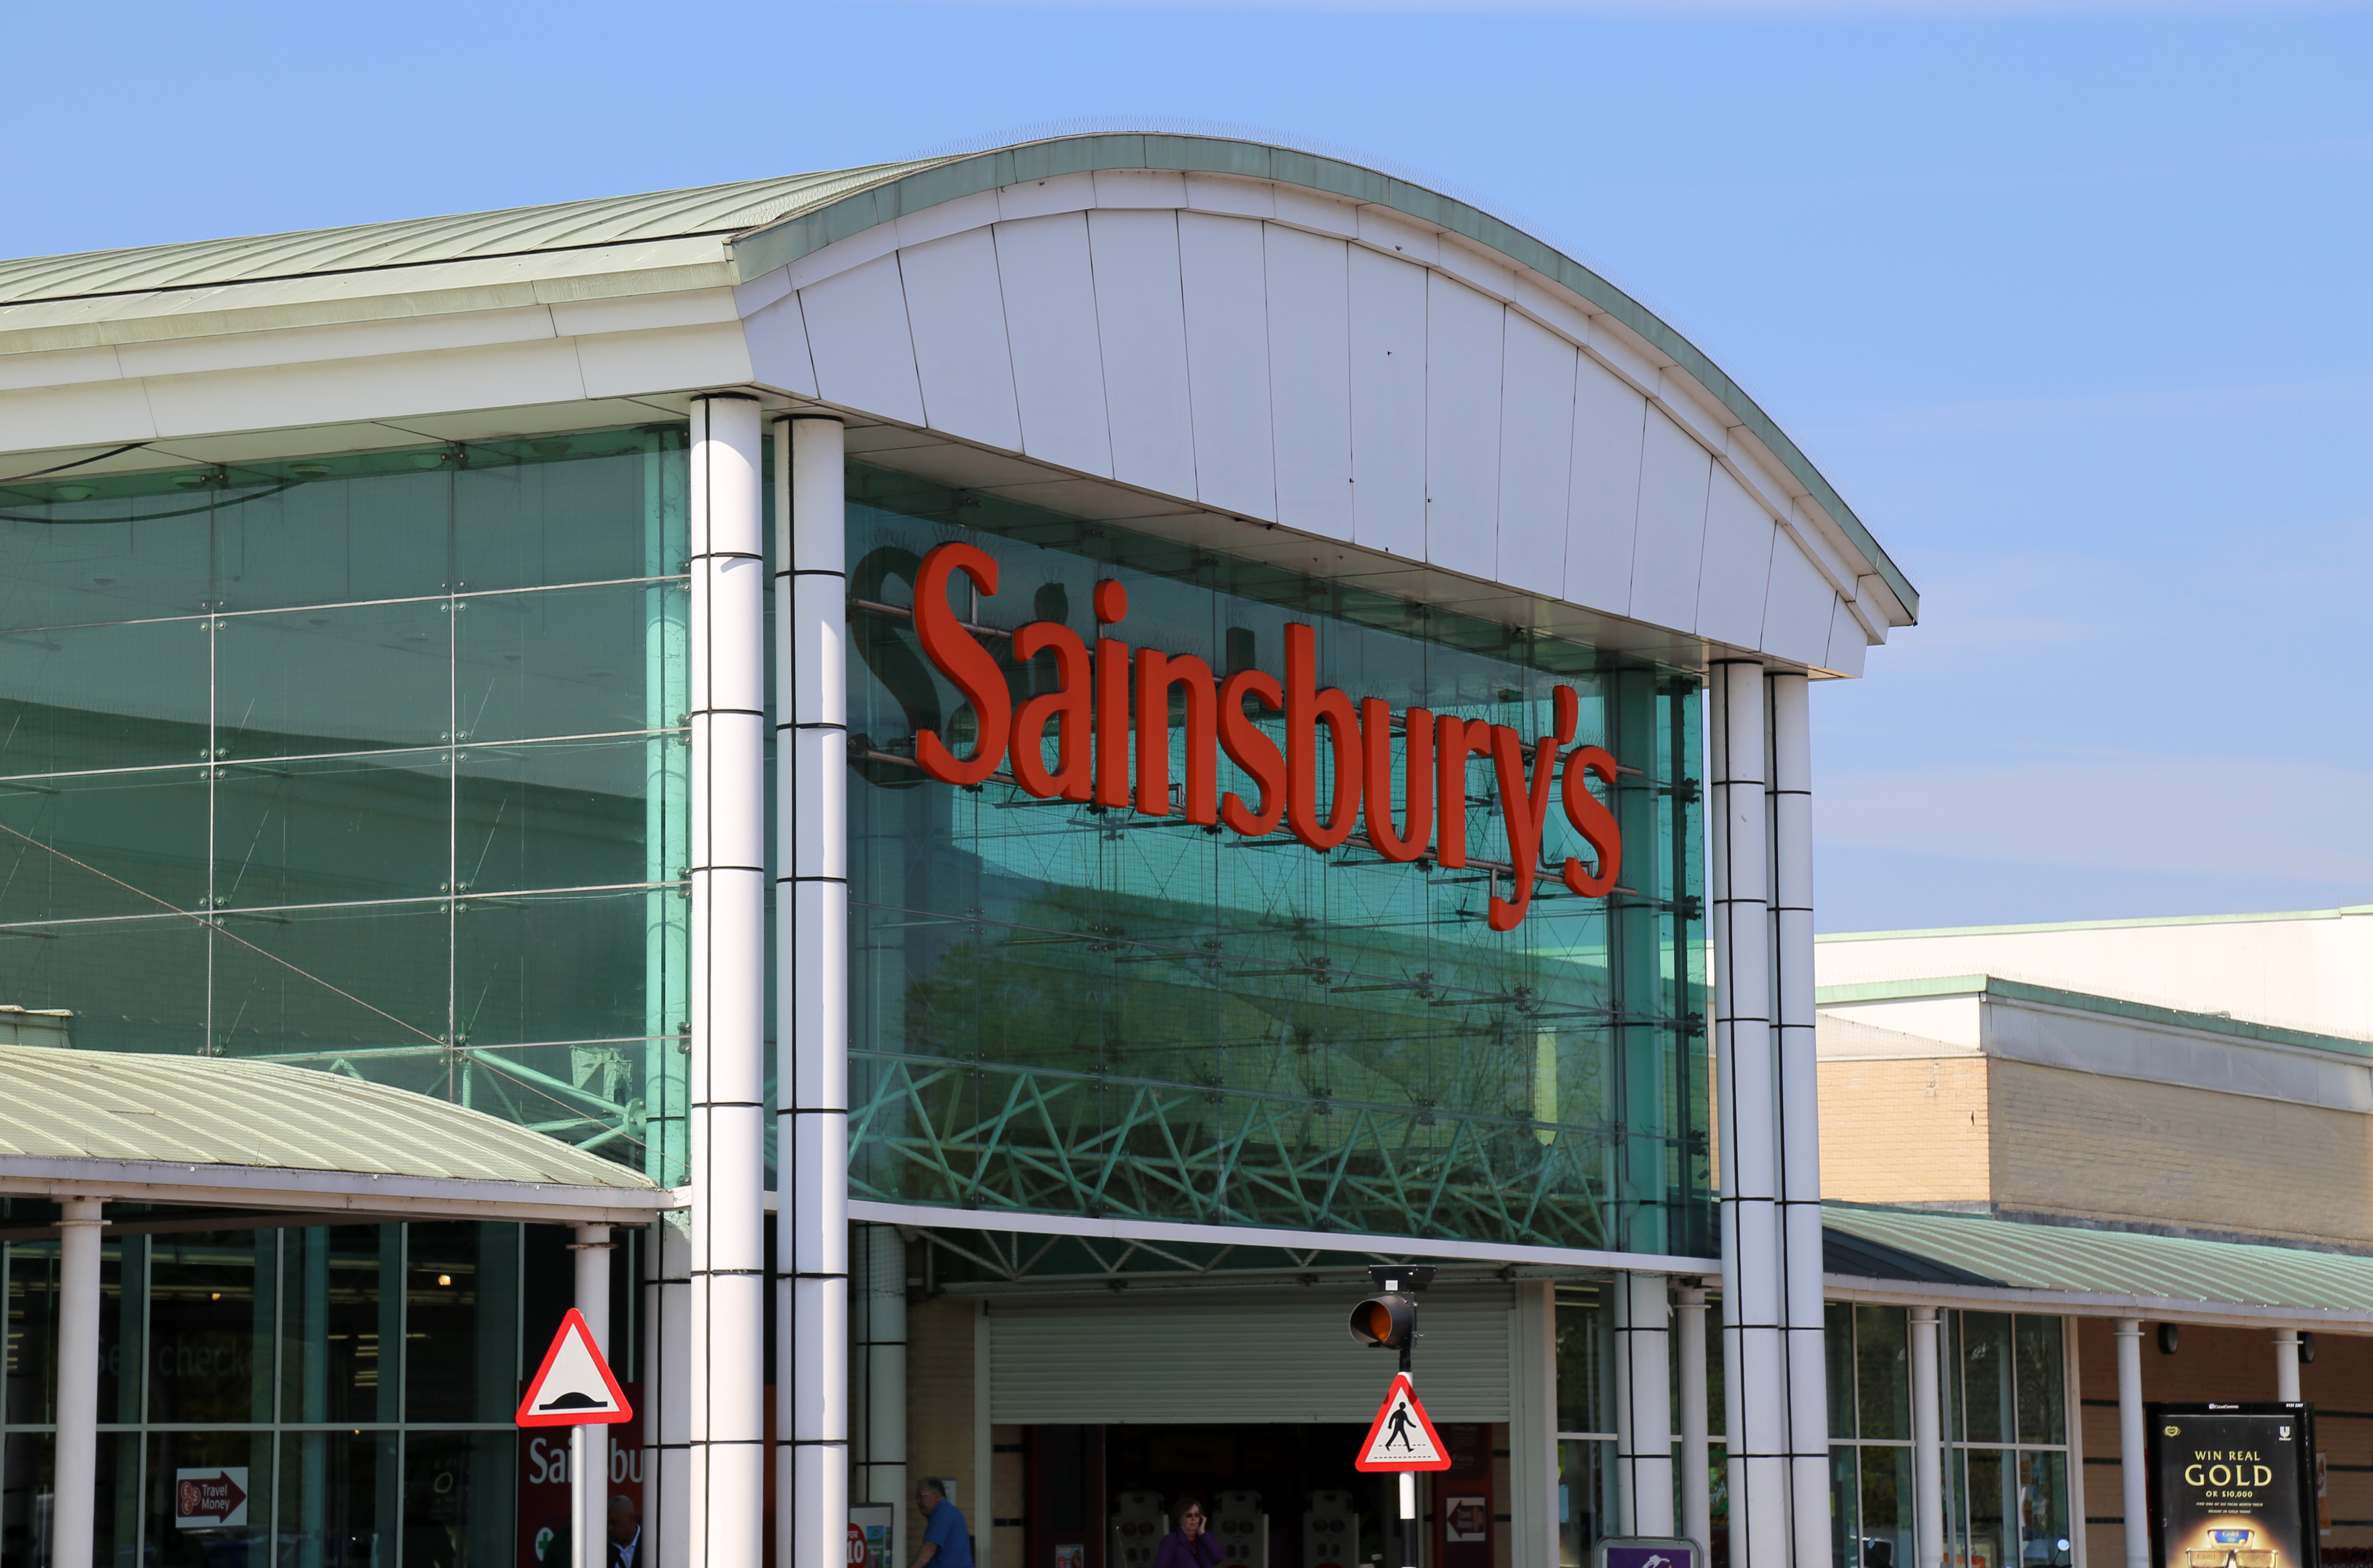 Not taking a risk assessment before entering a joint venture may see you fail like Sainsbury's